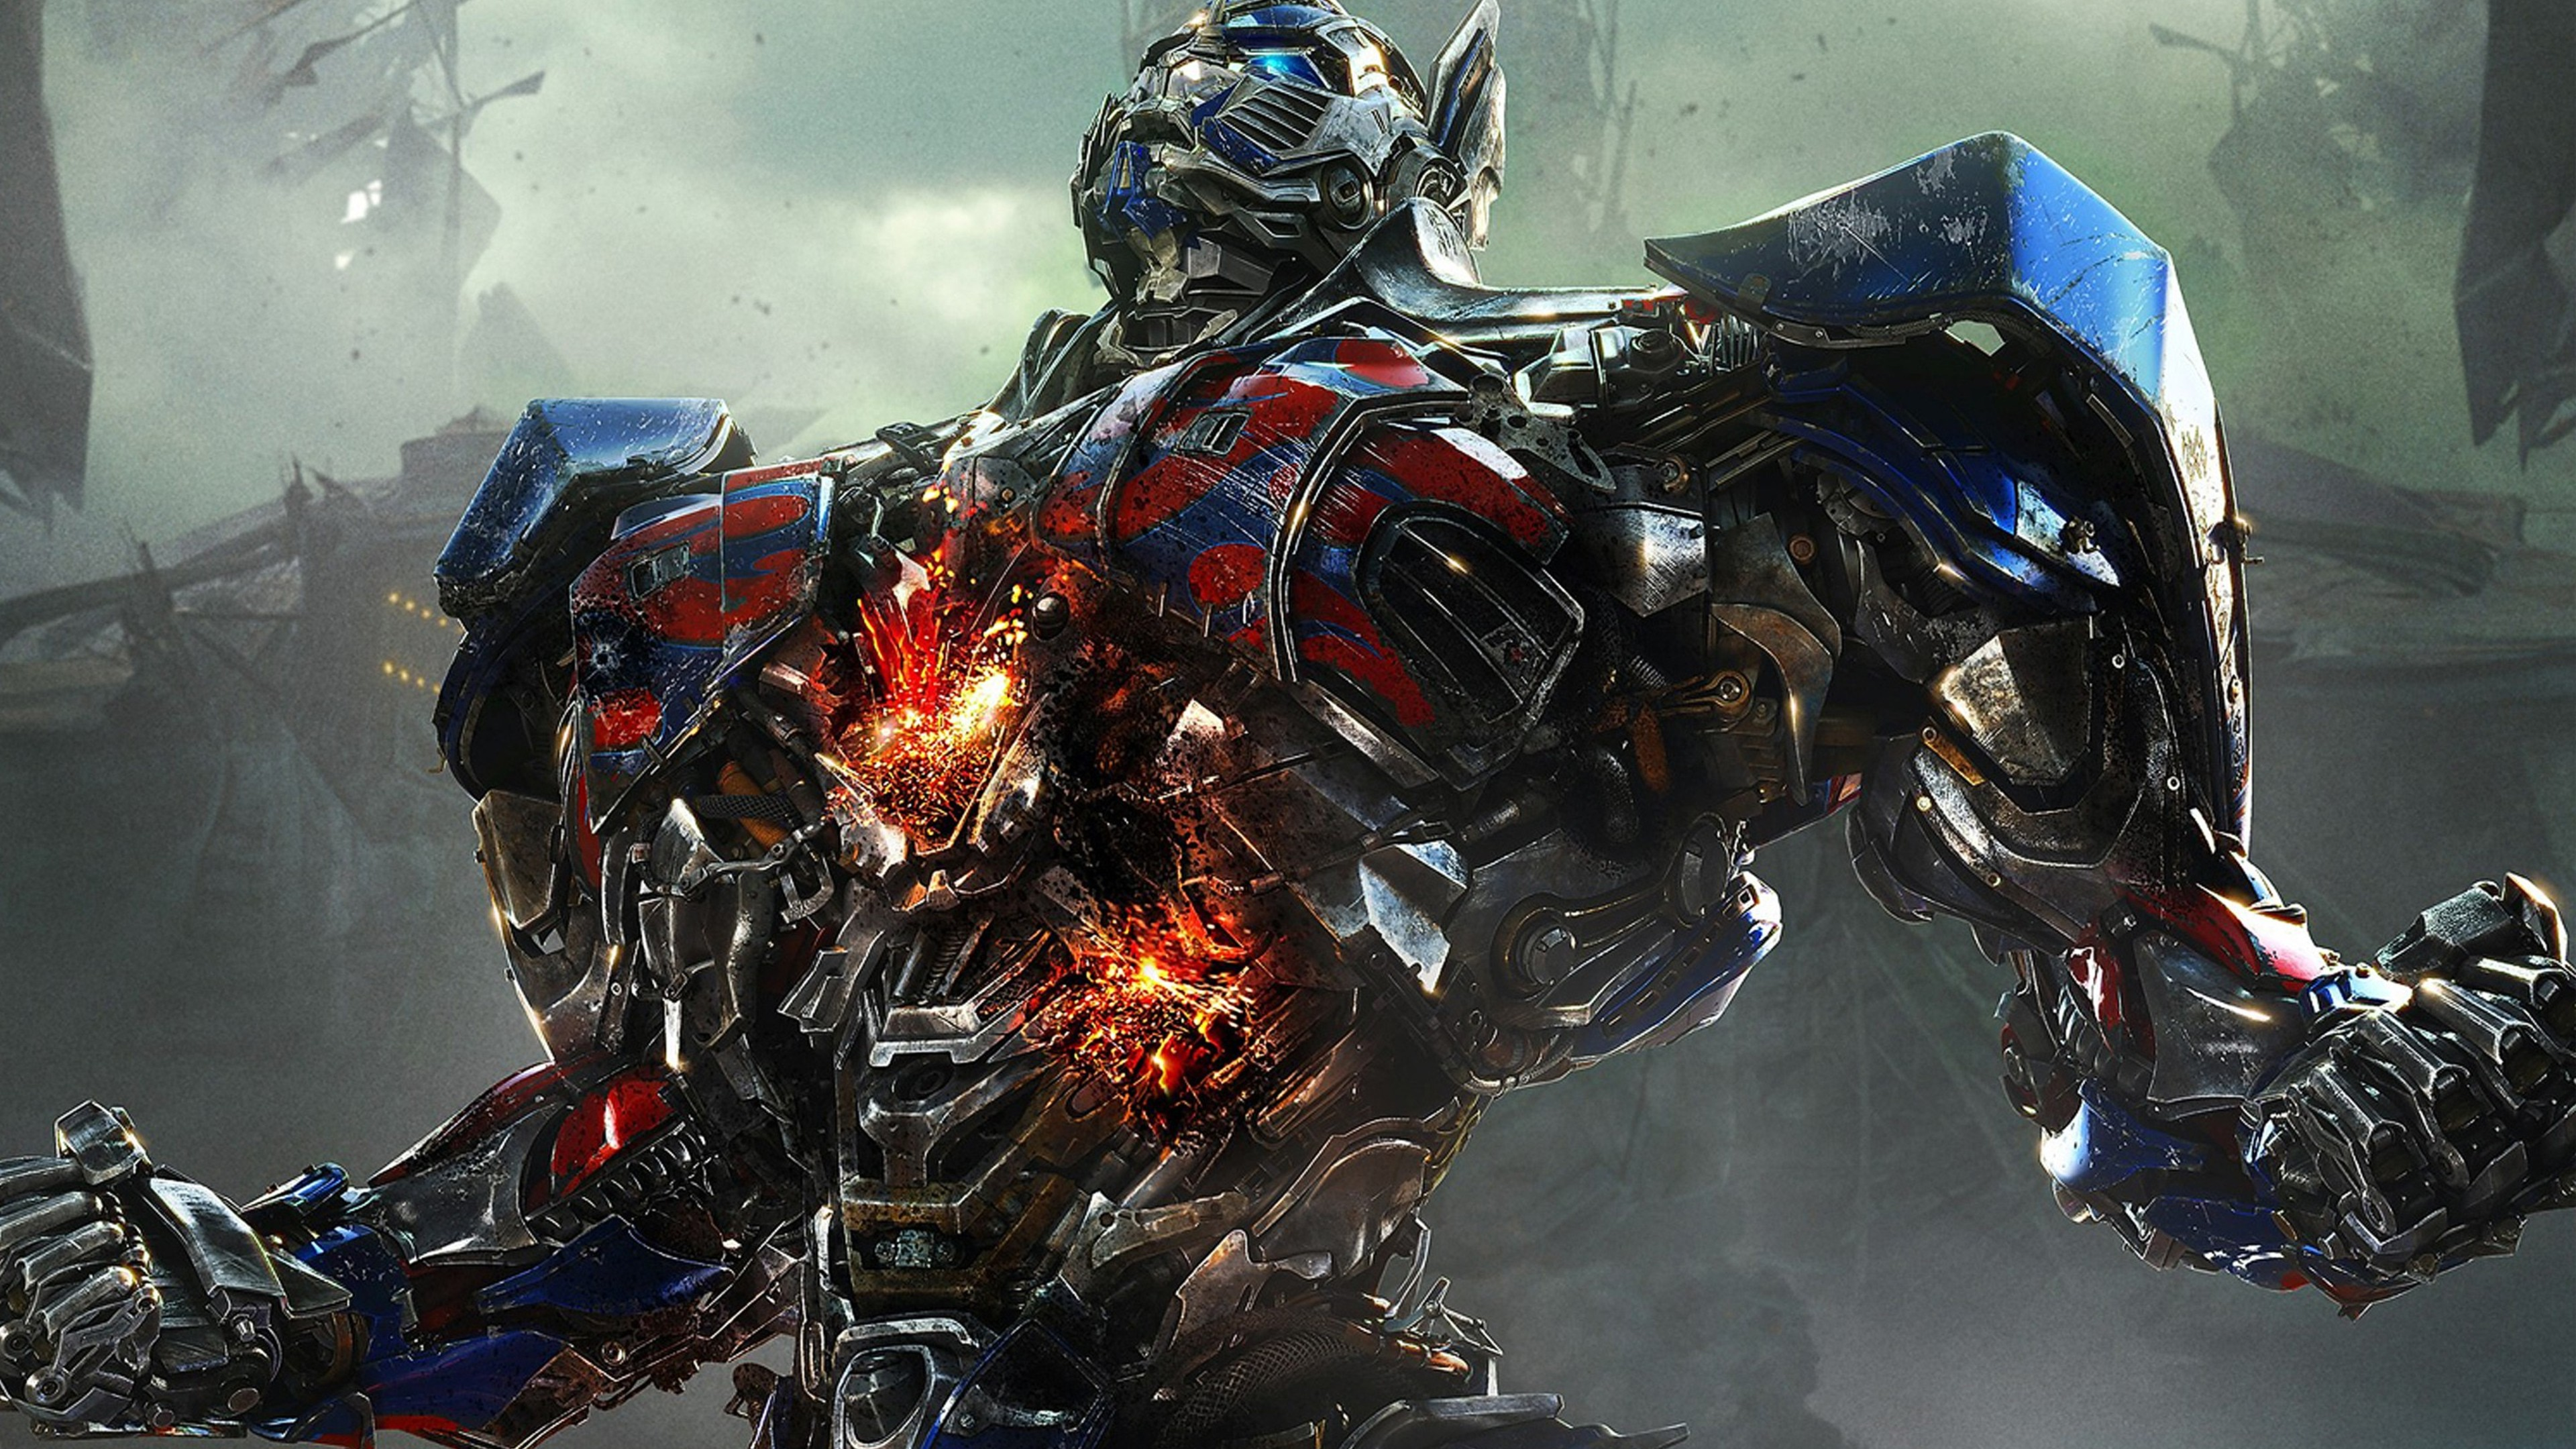 optimus prime transformers age of extinction, hd movies, 4k